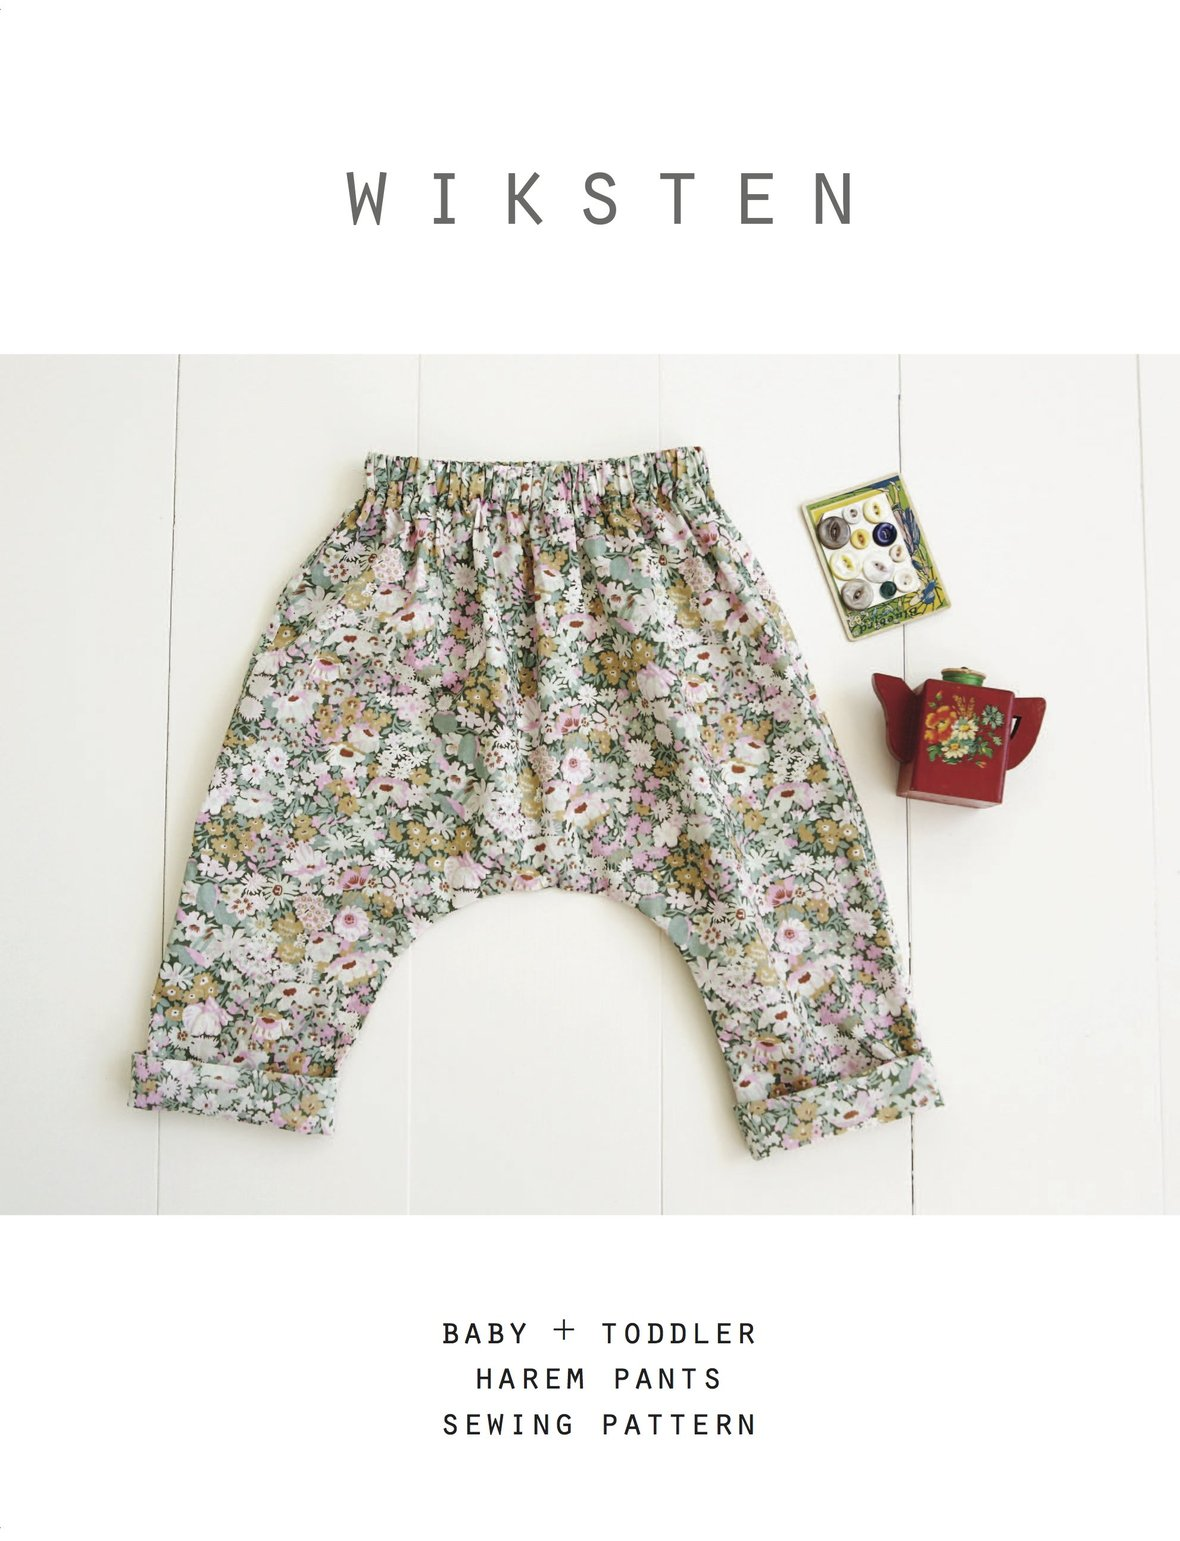 wiksten harem pants sewing pattern